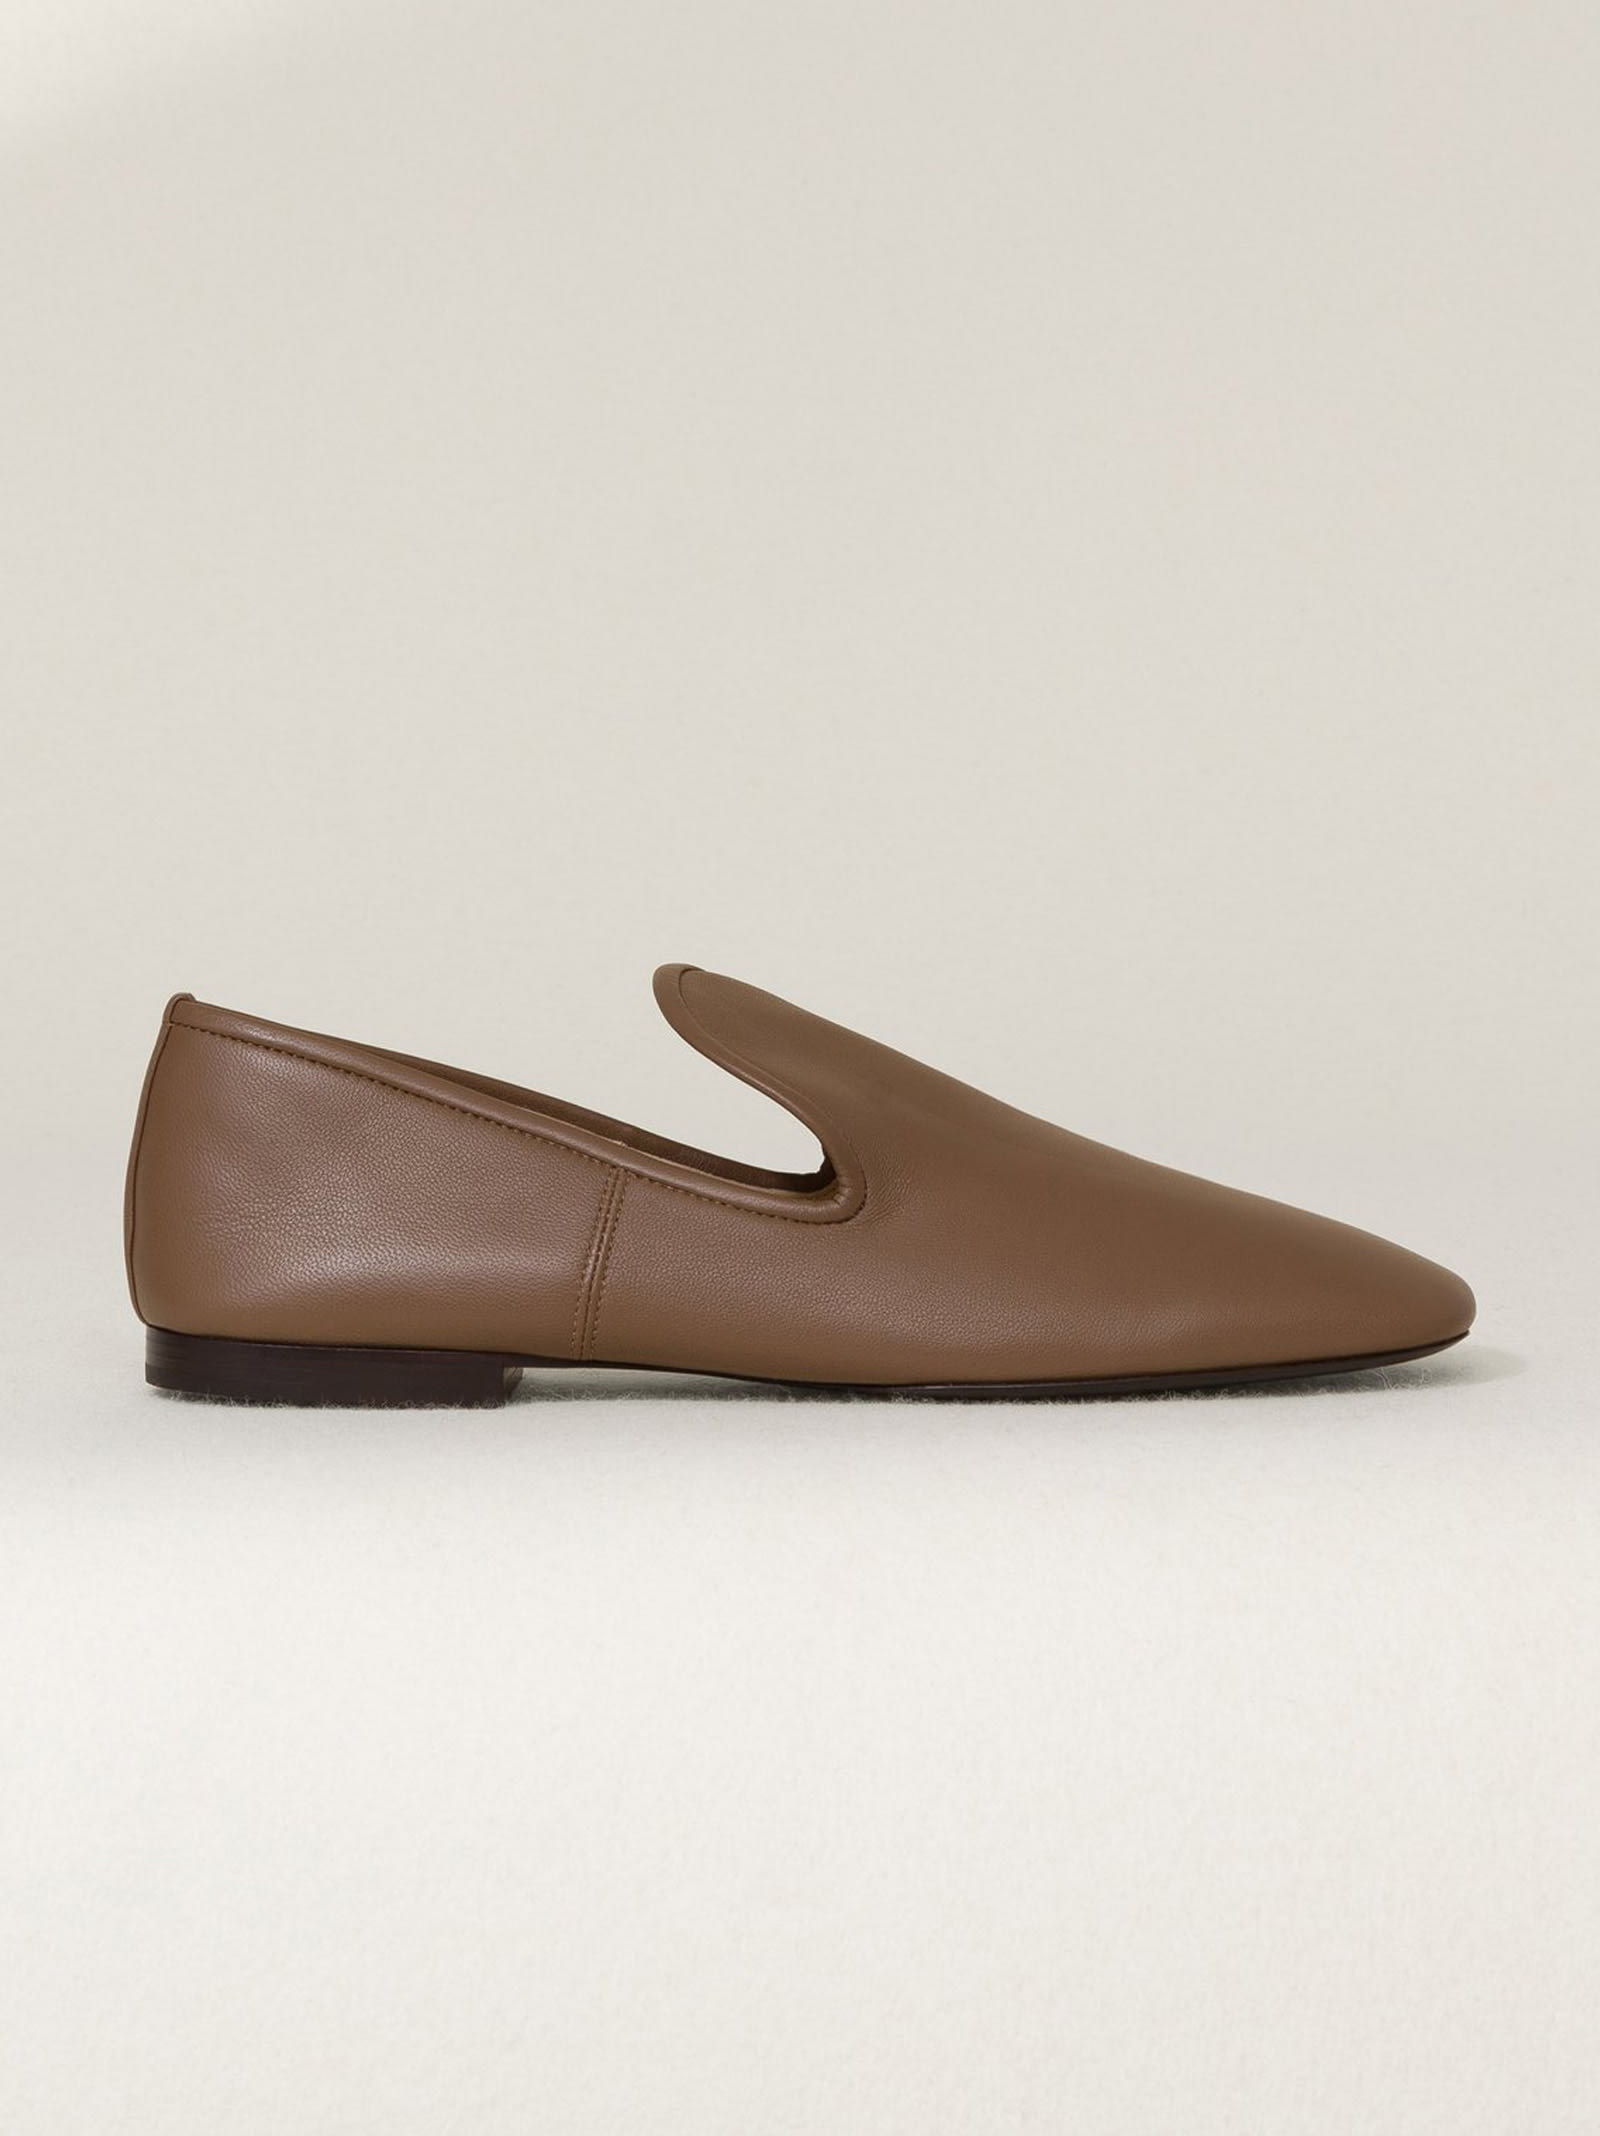 Lemaire Soft Loafer from LemaireComposition: Leather